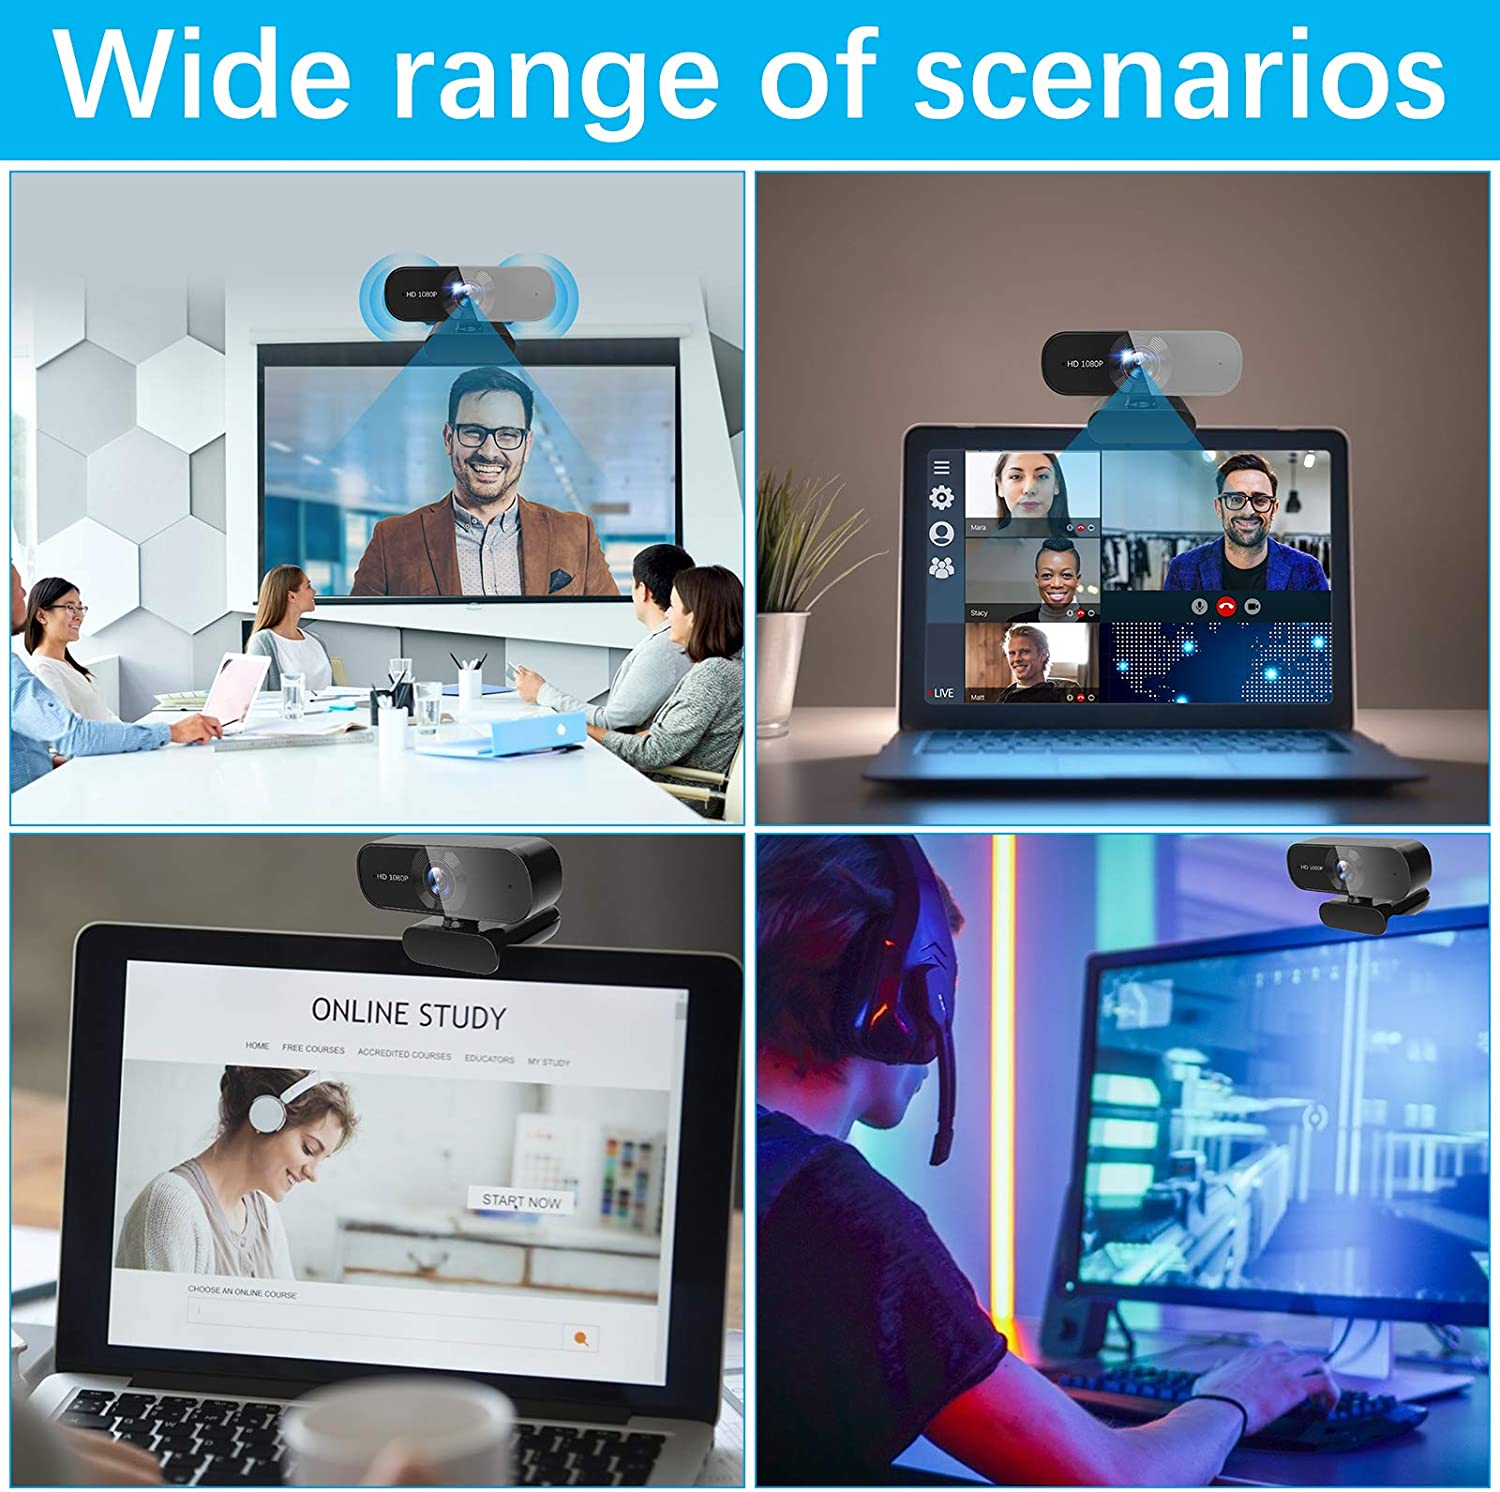 FHD 1080P Webcam with Microphone, USB Computer Web Camera with Auto Light Correction, Wide-Angle Streaming PC Webcams, Compatible with Skype/Zoom/Google Hangouts/Facetime/Windows/Mac OS/Android